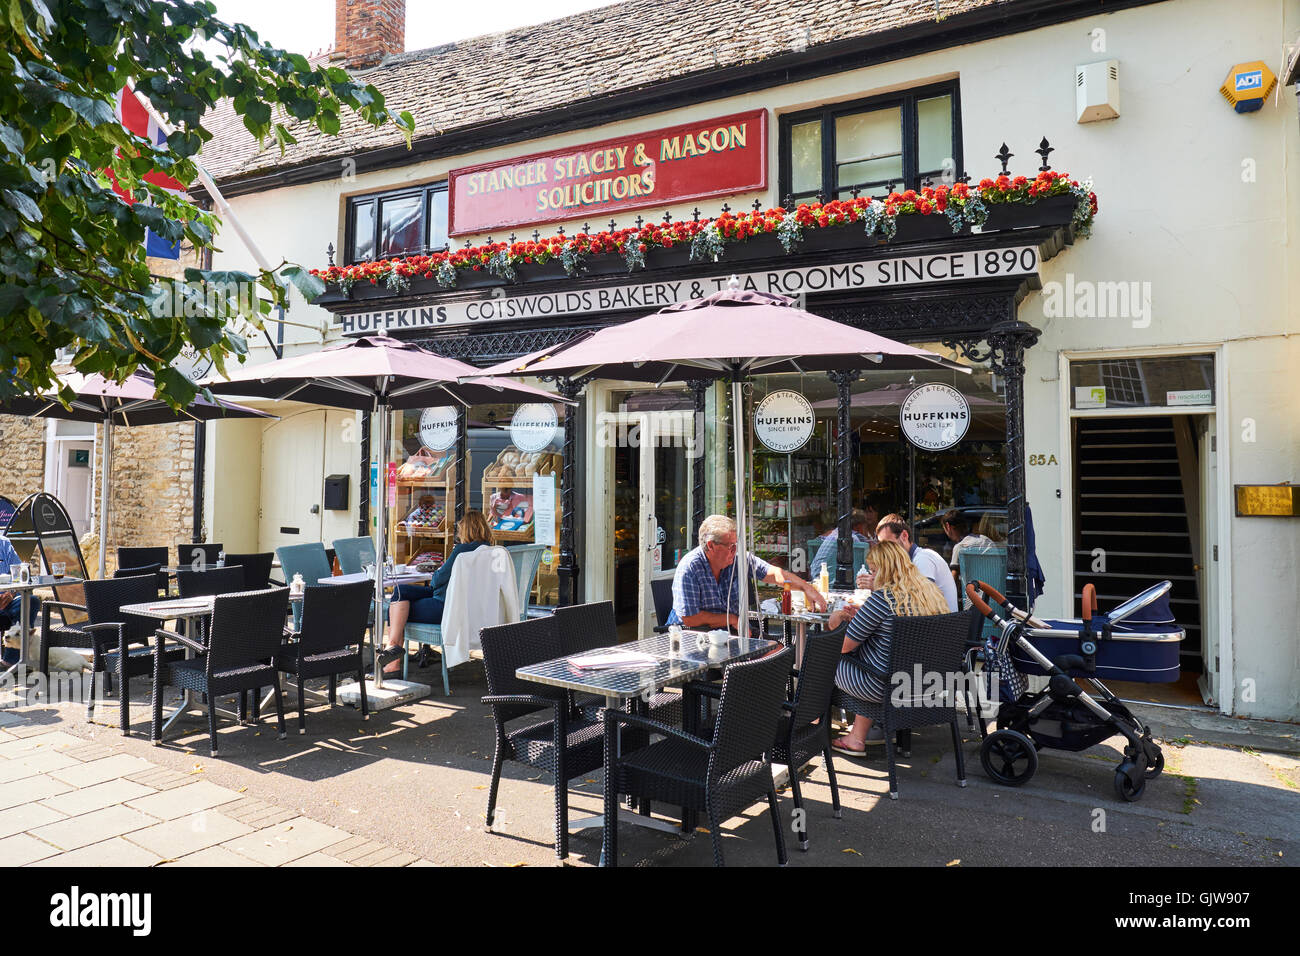 Huffkins Tea Rooms & Bakery High Street Witney Oxfordshire UK Stock Photo